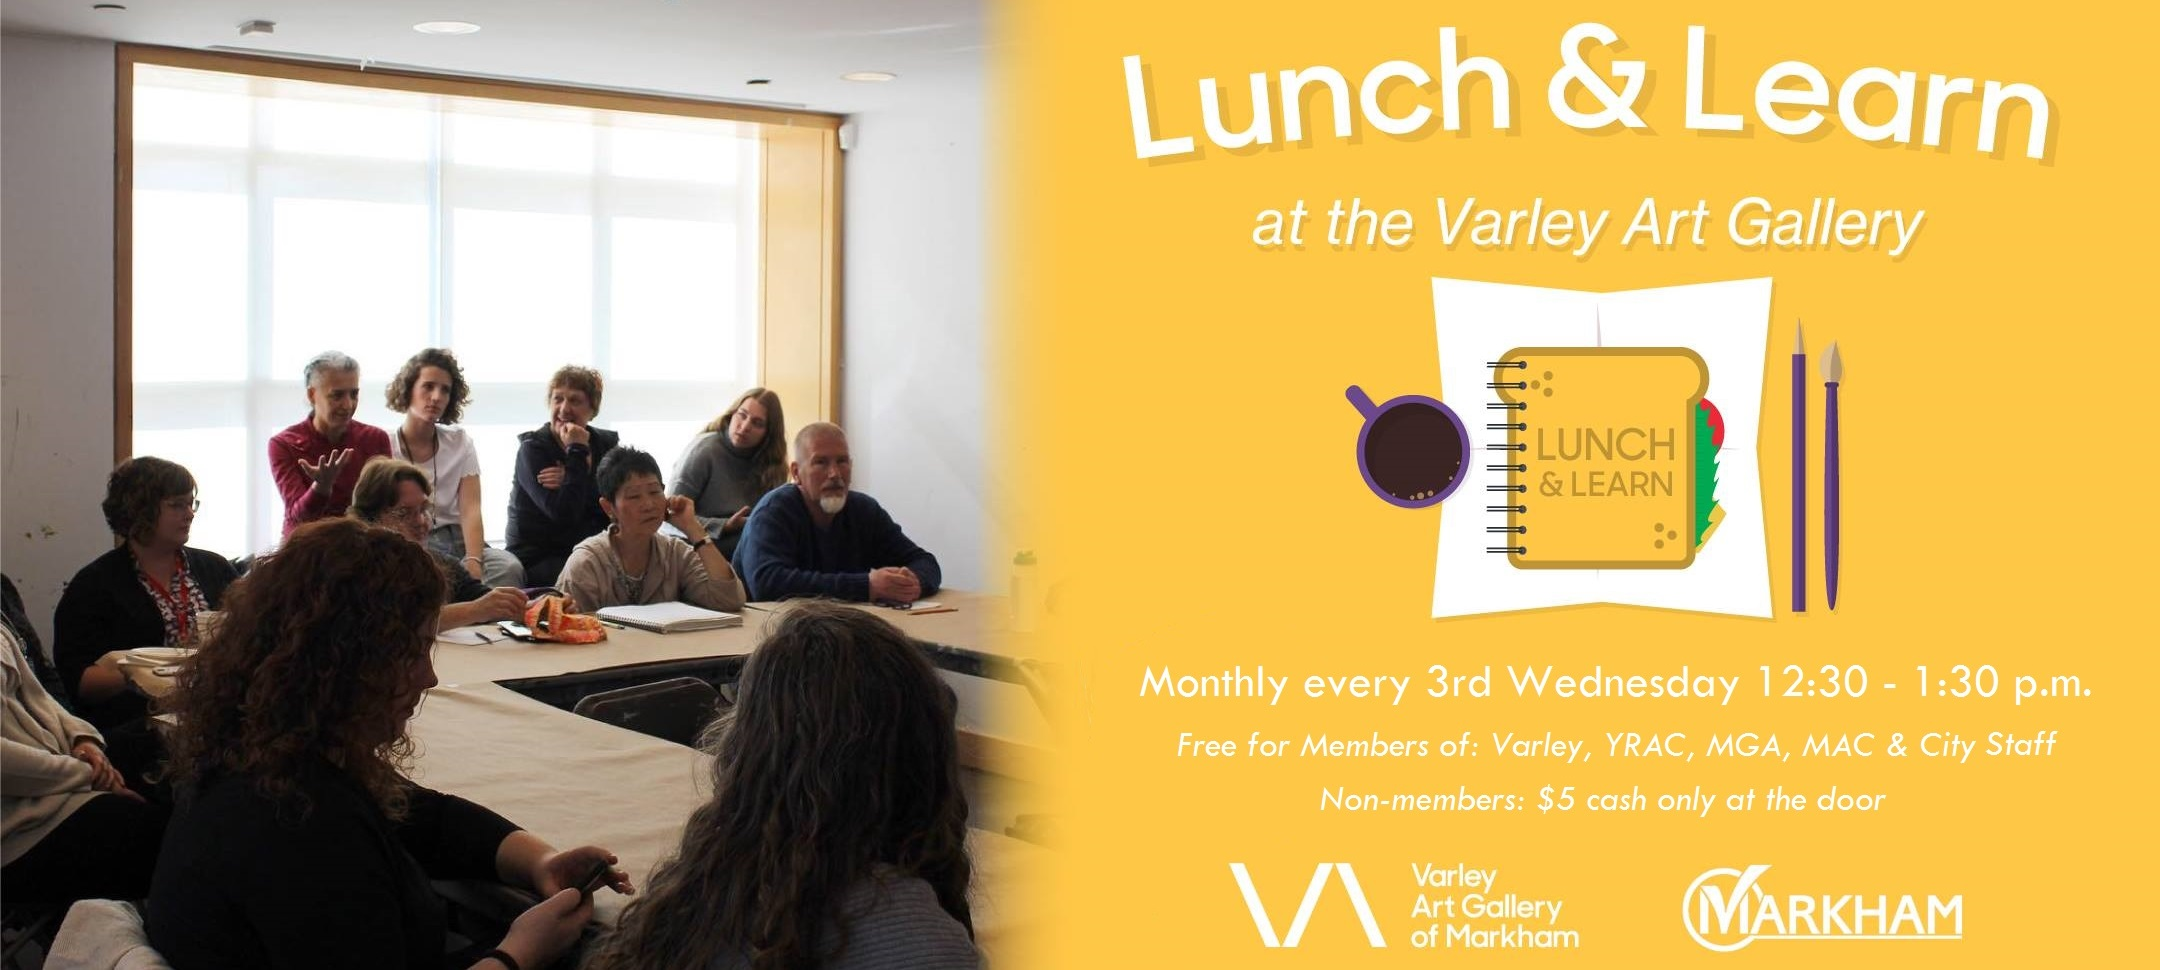 Lunch & Learn at the Varley Art Gallery